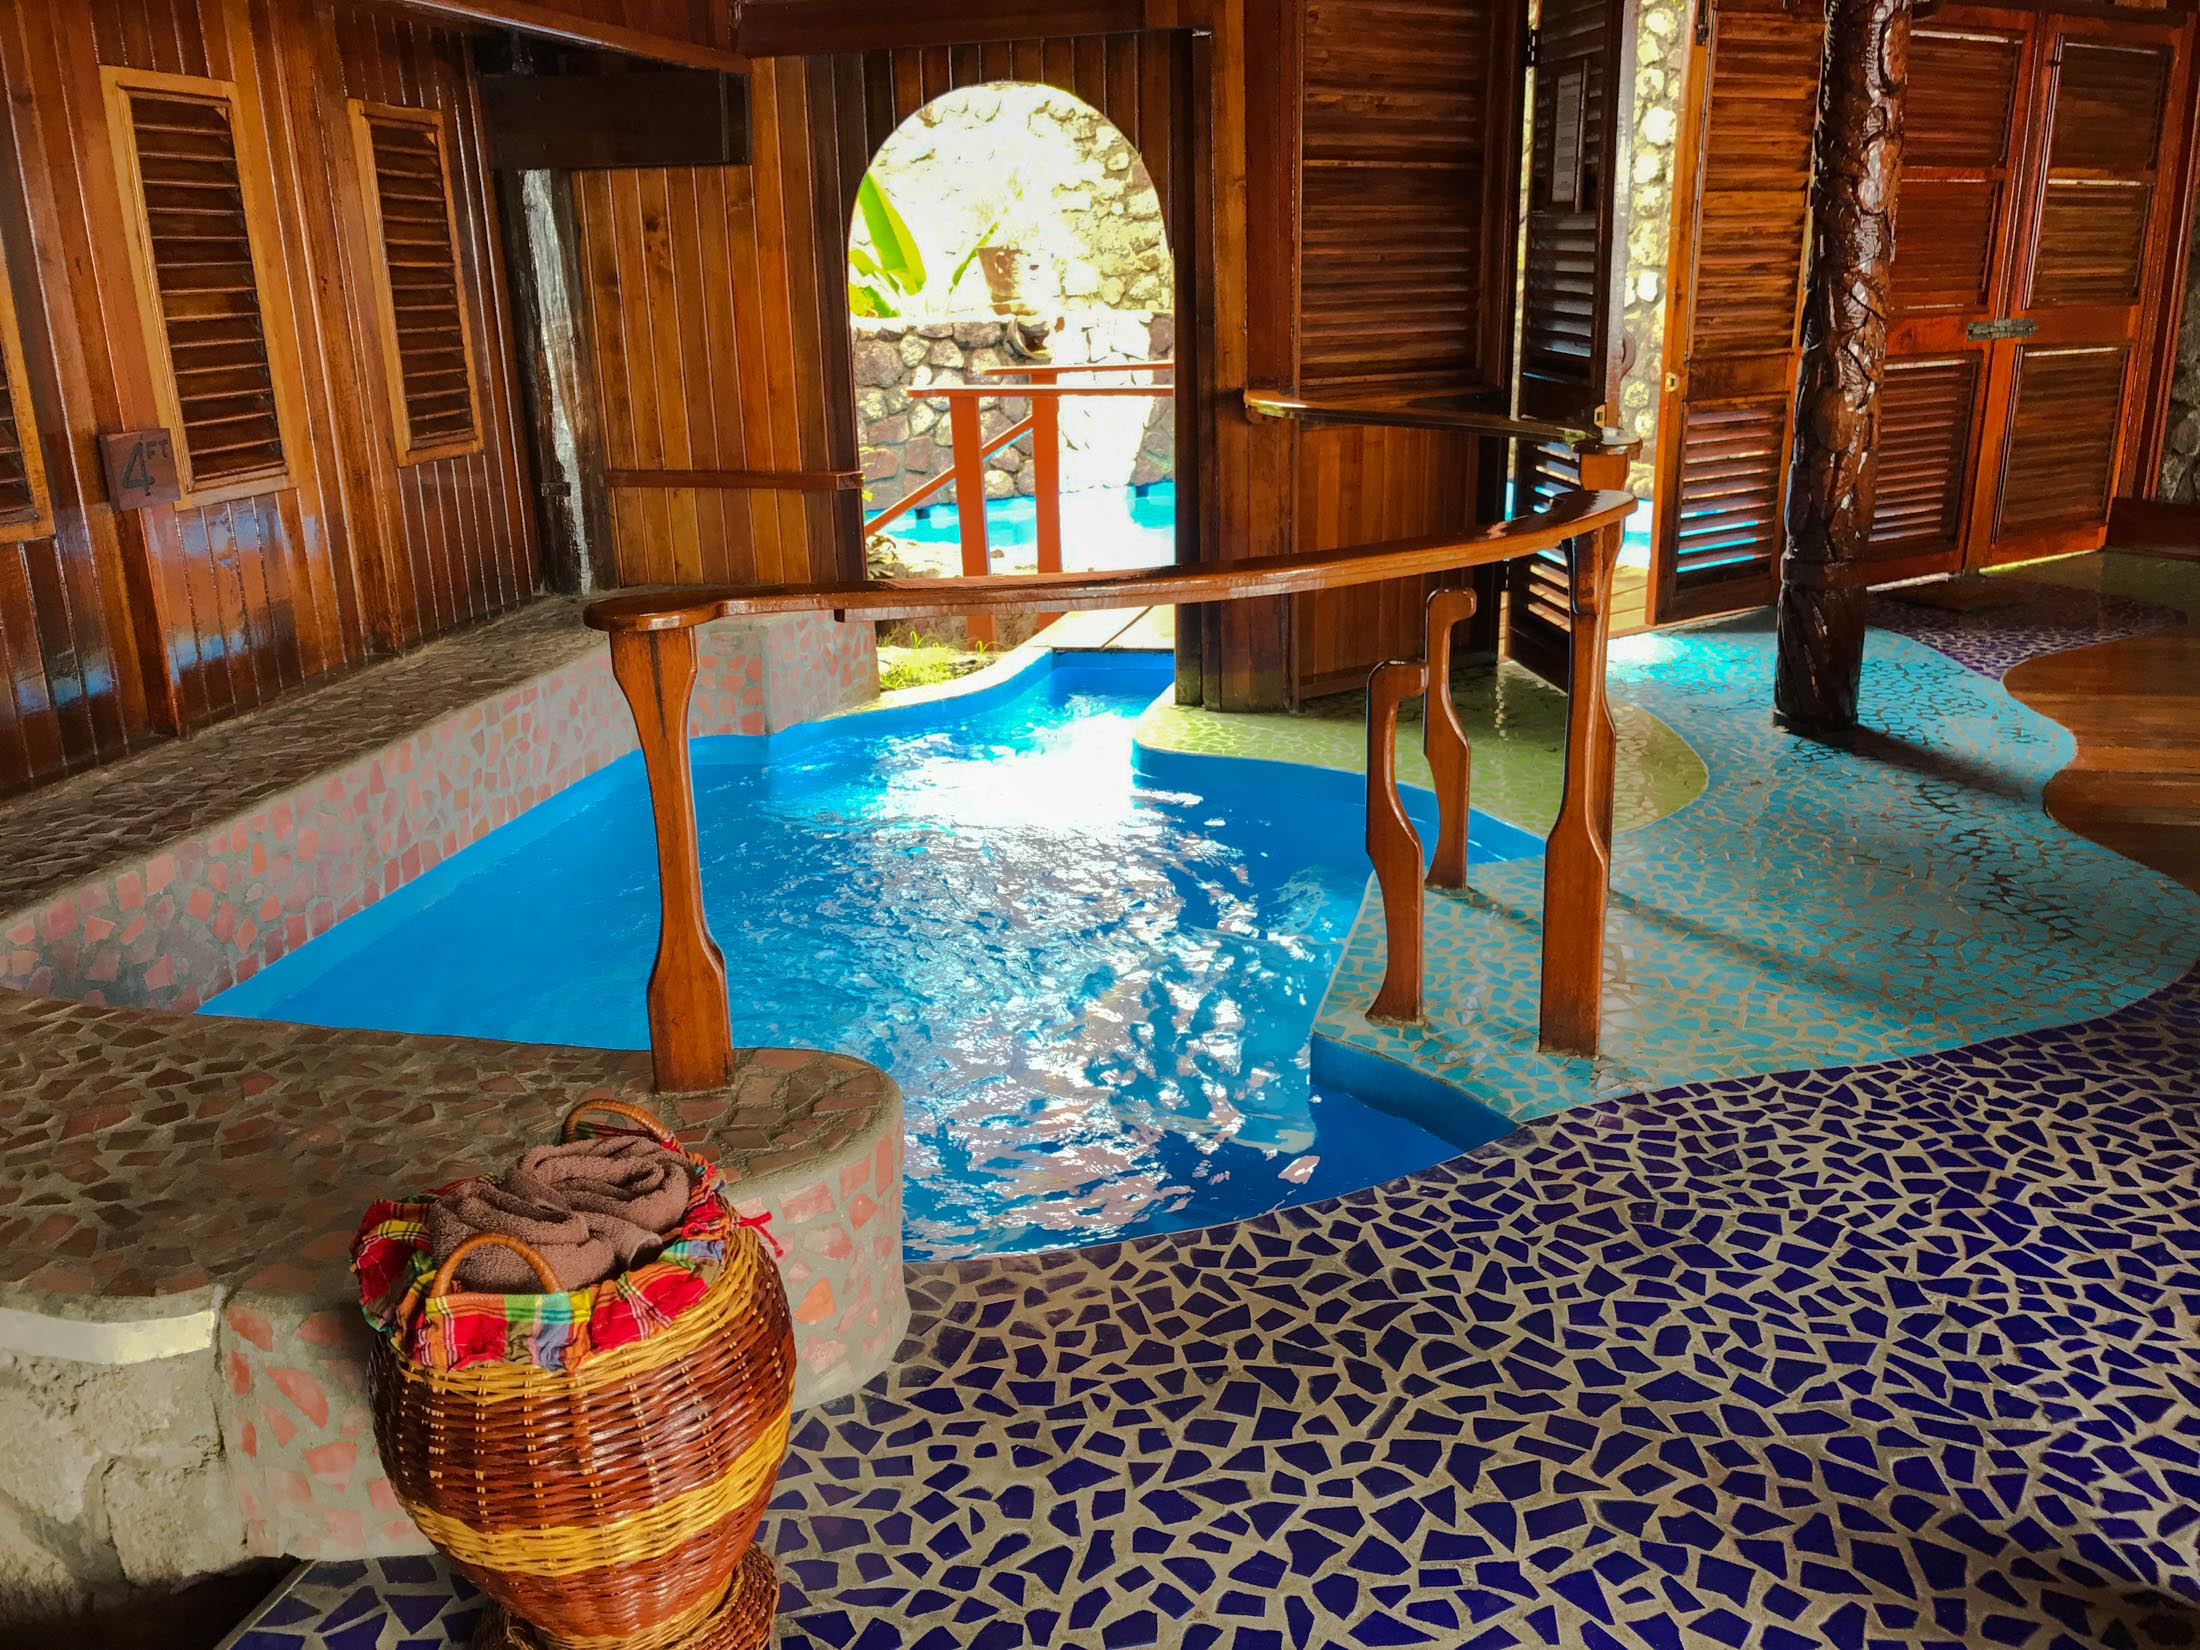 Ladera Resort suite with indoor pool